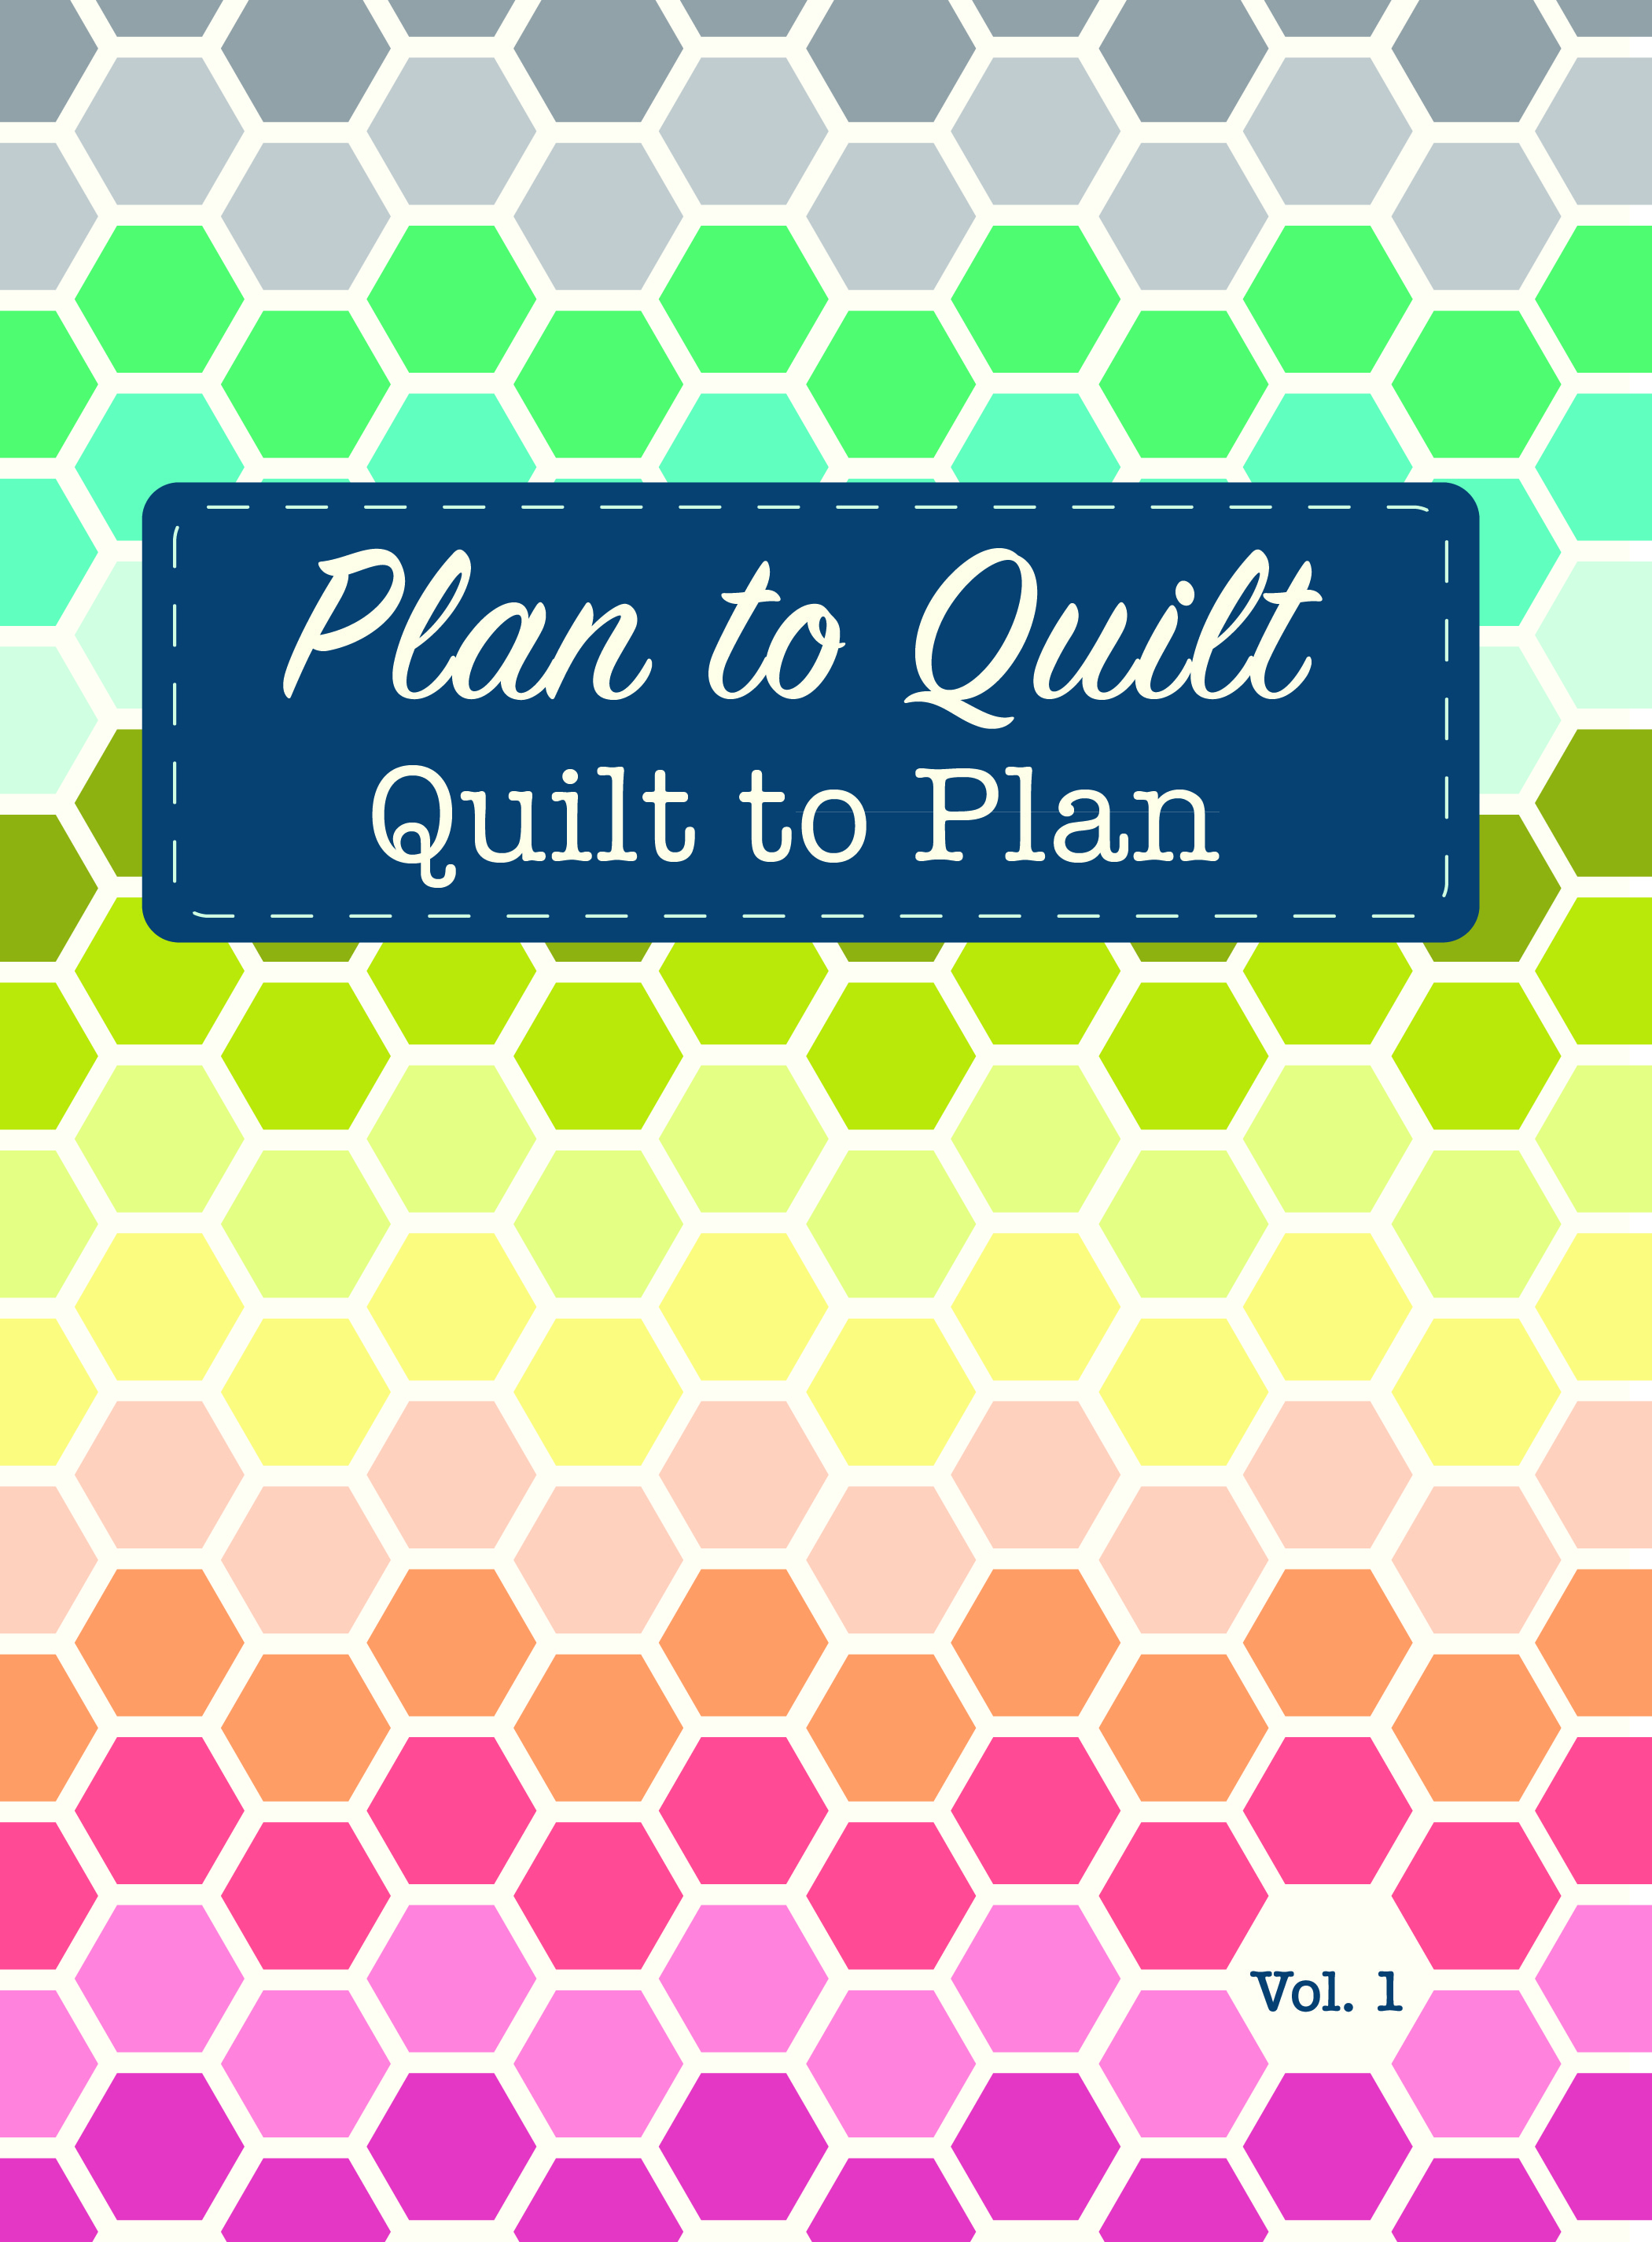 Quilt Matters Planner Year Long Cover Vol 1-01.jpg